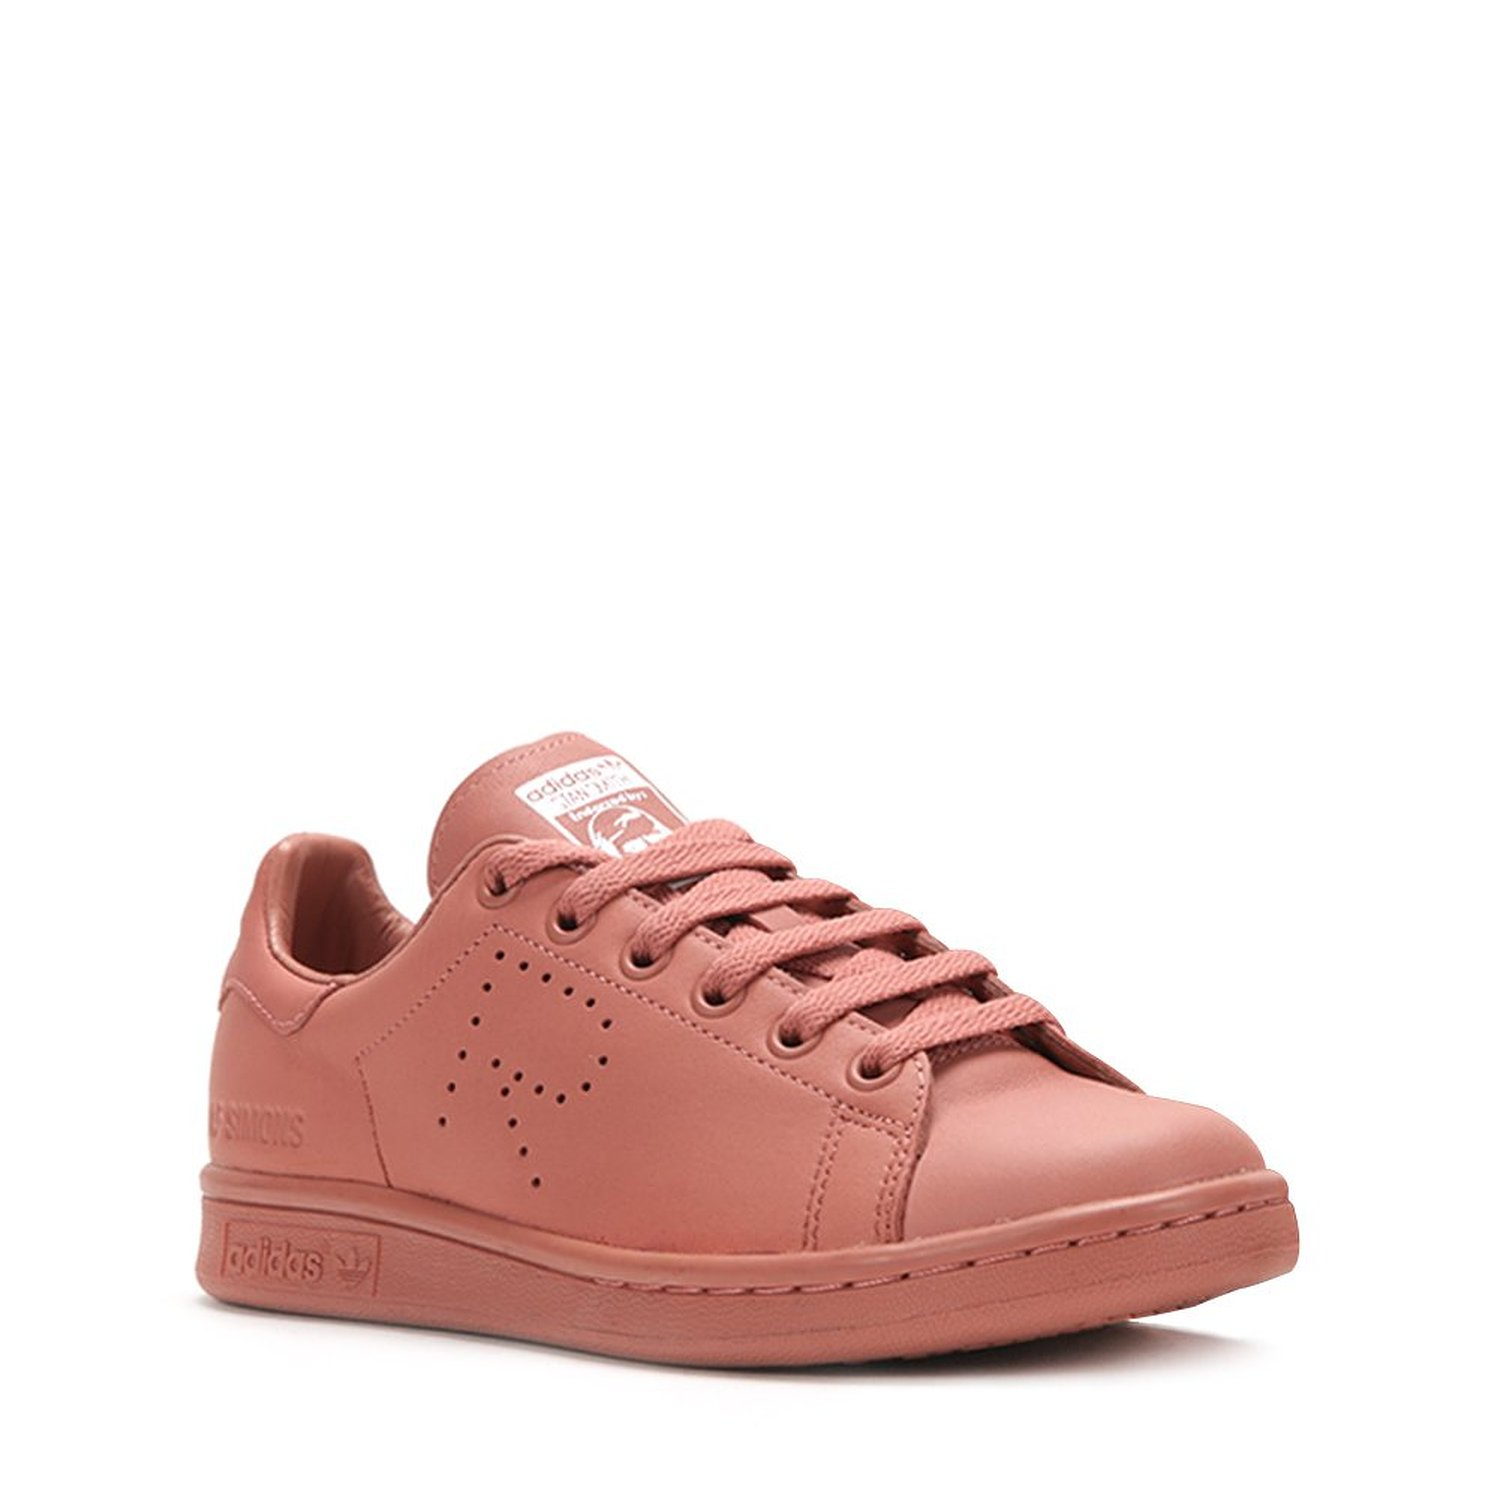 best website 1fb35 beeab Amazon.com | Adidas X Raf Simons Stan Smith Sneakers AQ2646 Ash Pink SZ UK  4 / US 4.5 | Fashion Sneakers